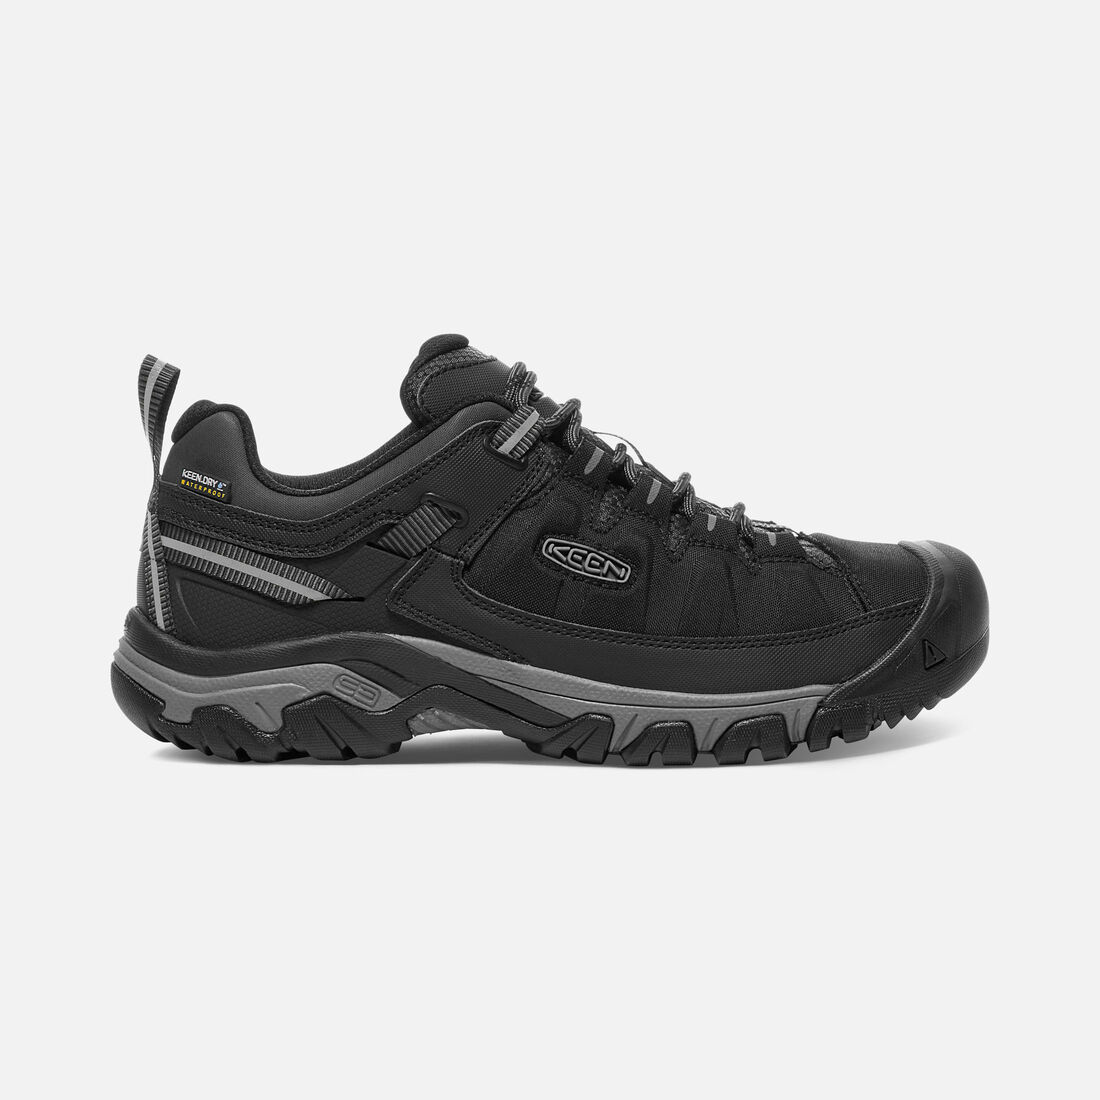 MEN'S TARGHEE EXP WATERPROOF HIKING SHOES in Black/Steel Grey - large view.